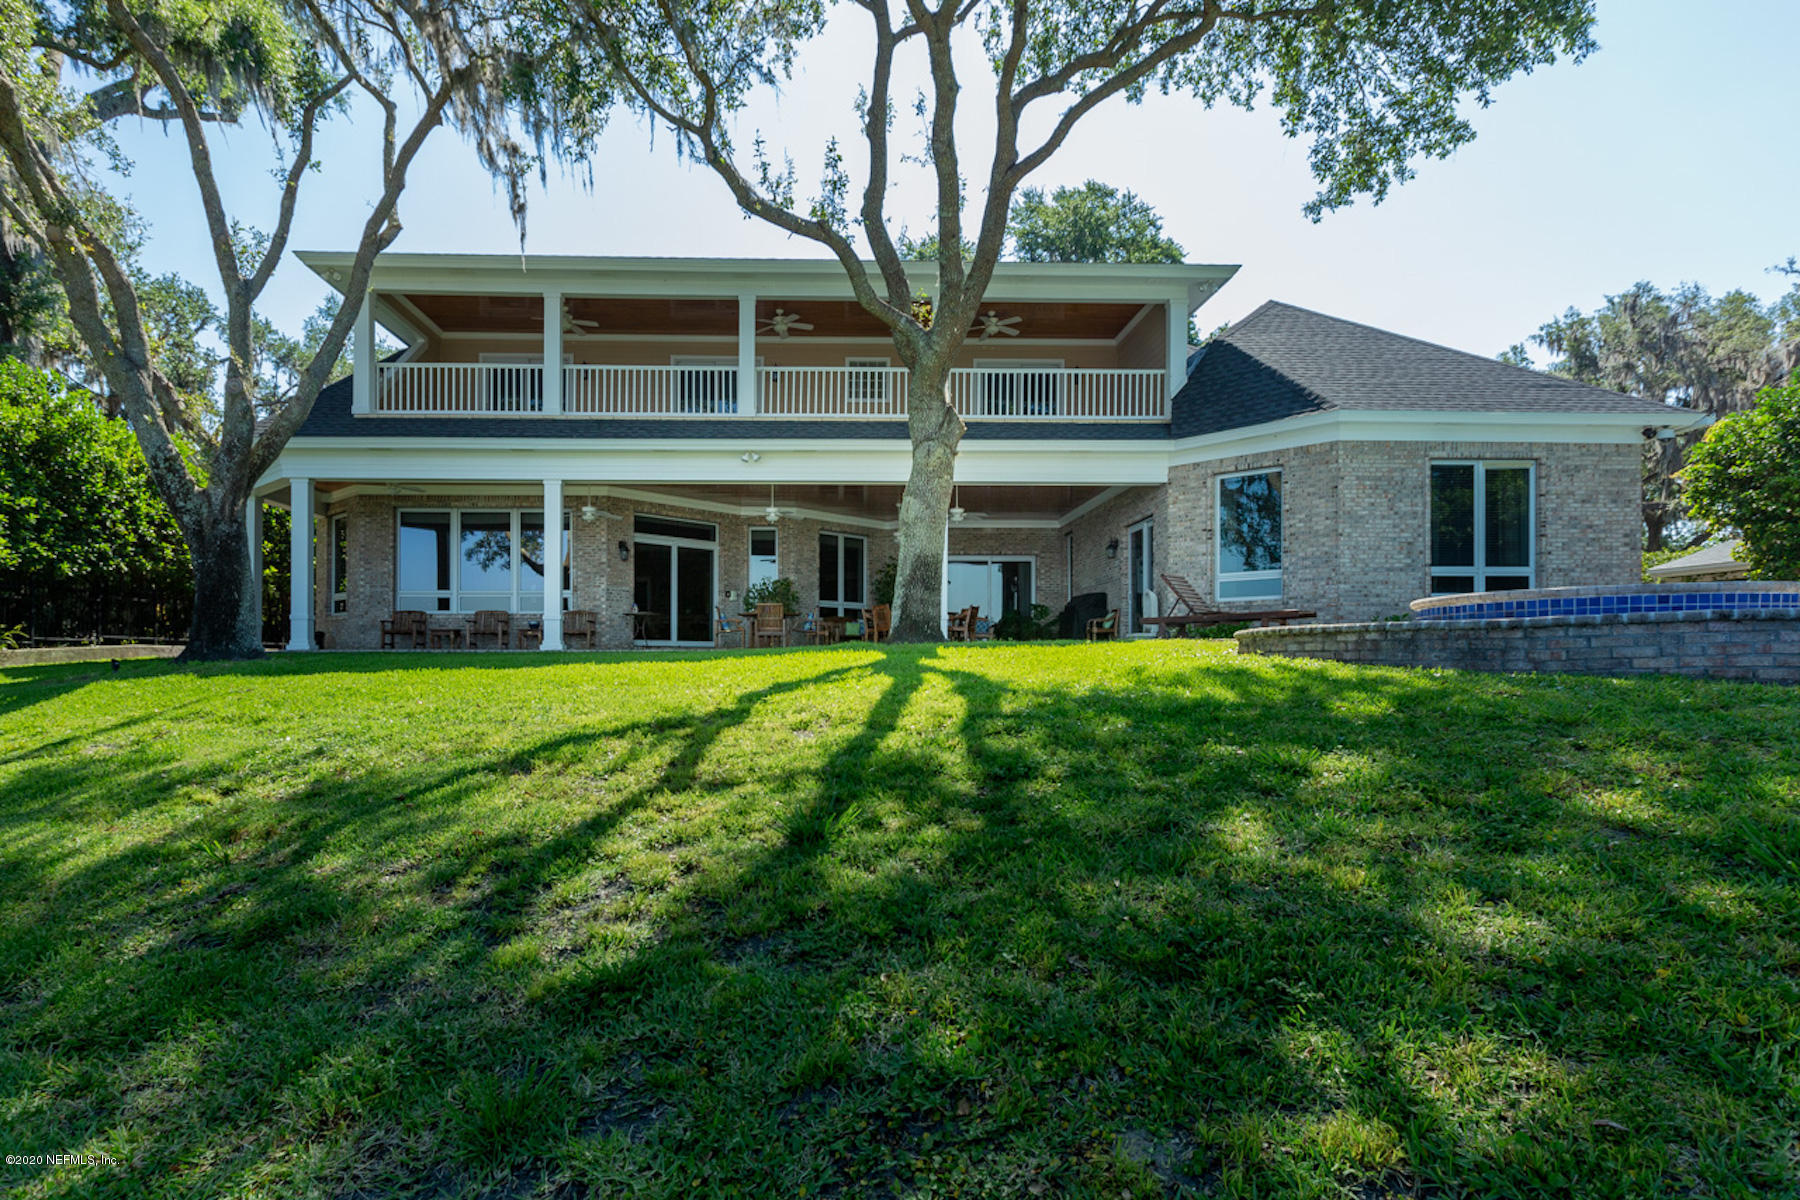 3601 HOLLY GROVE, JACKSONVILLE, FLORIDA 32217, 6 Bedrooms Bedrooms, ,6 BathroomsBathrooms,Rental,For Rent,HOLLY GROVE,1049708